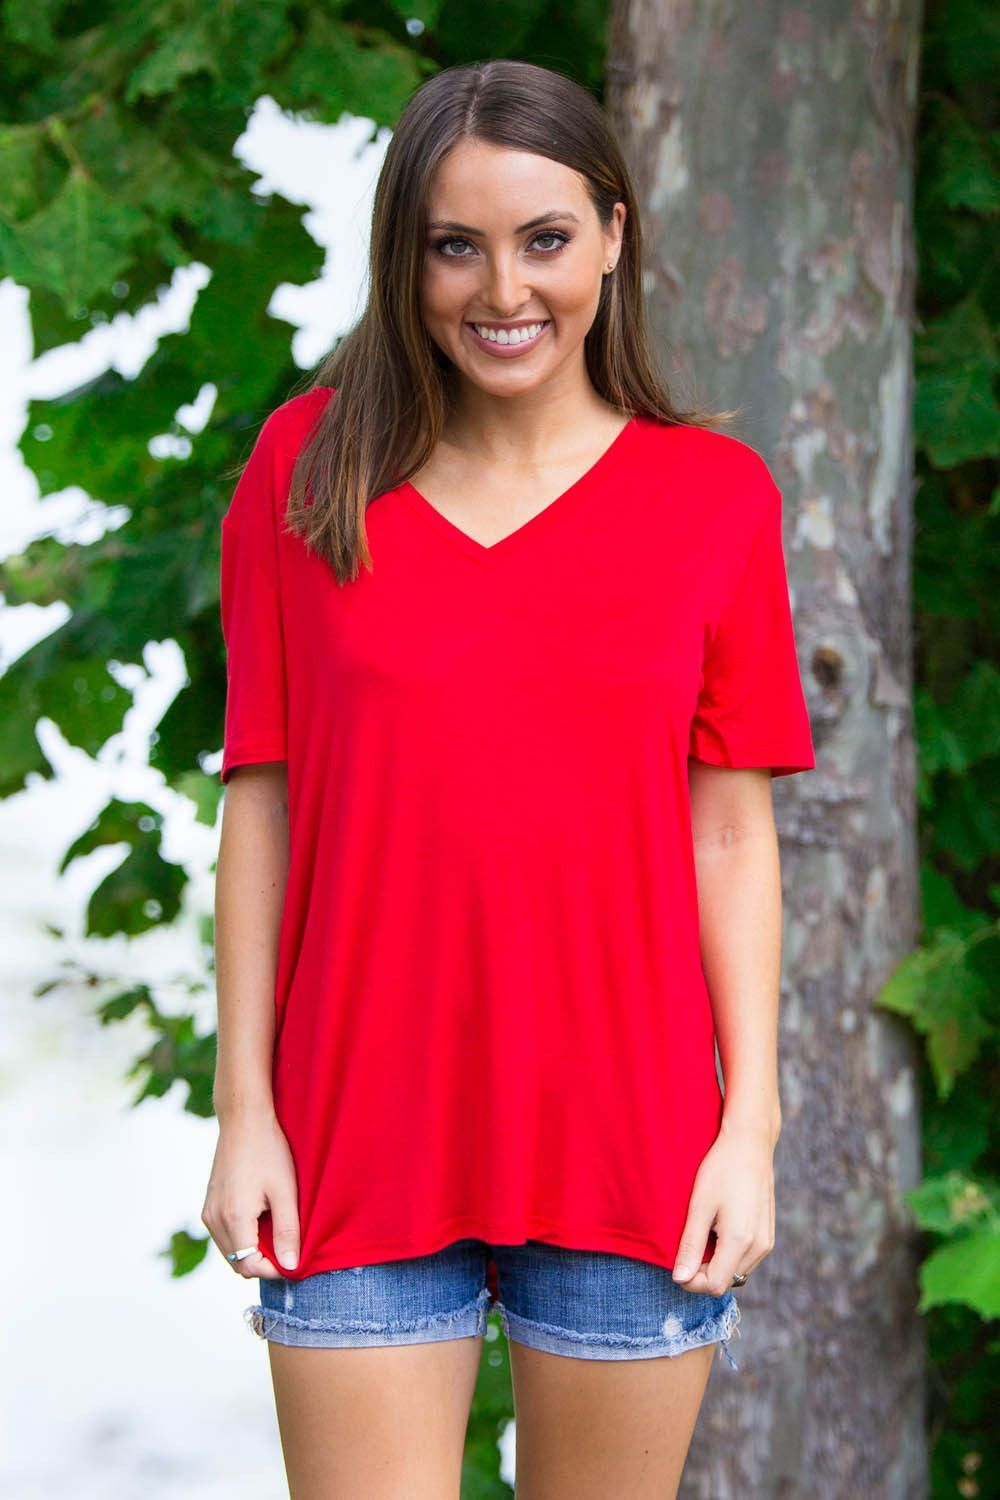 da75c1c4e1c Bamboo Spandex Short sleeve knitted top. This piko features a drop shoulder  with a loose fitted short sleeve. The width is more of a regular t-shirt.